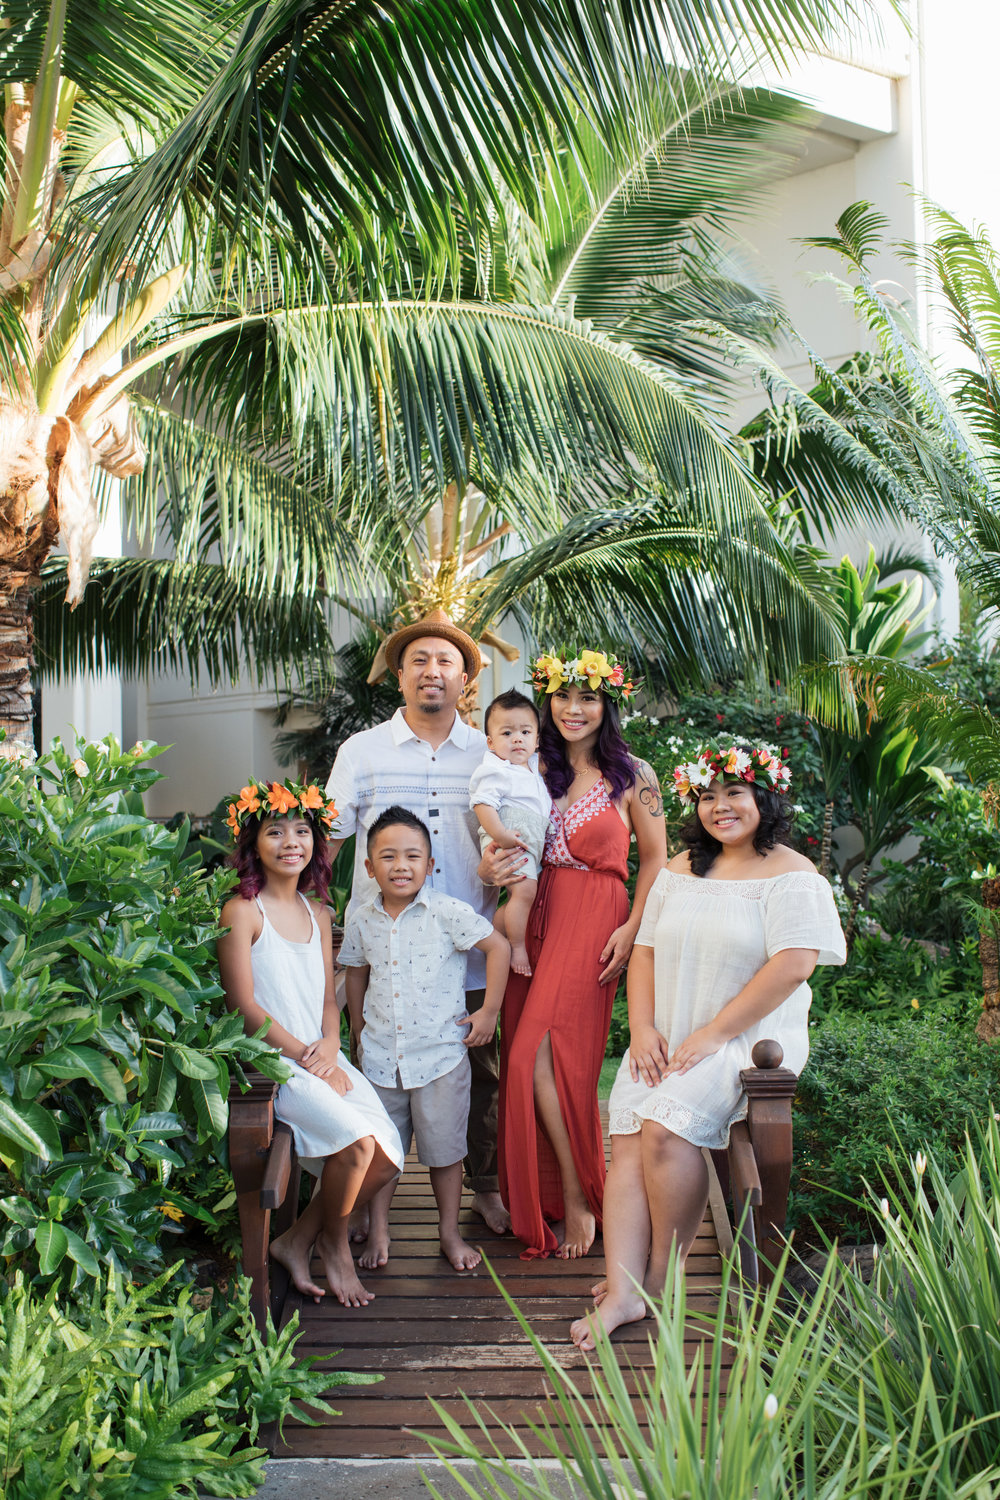 Bright coral colors added a pop to this family's outfits for their photography session!